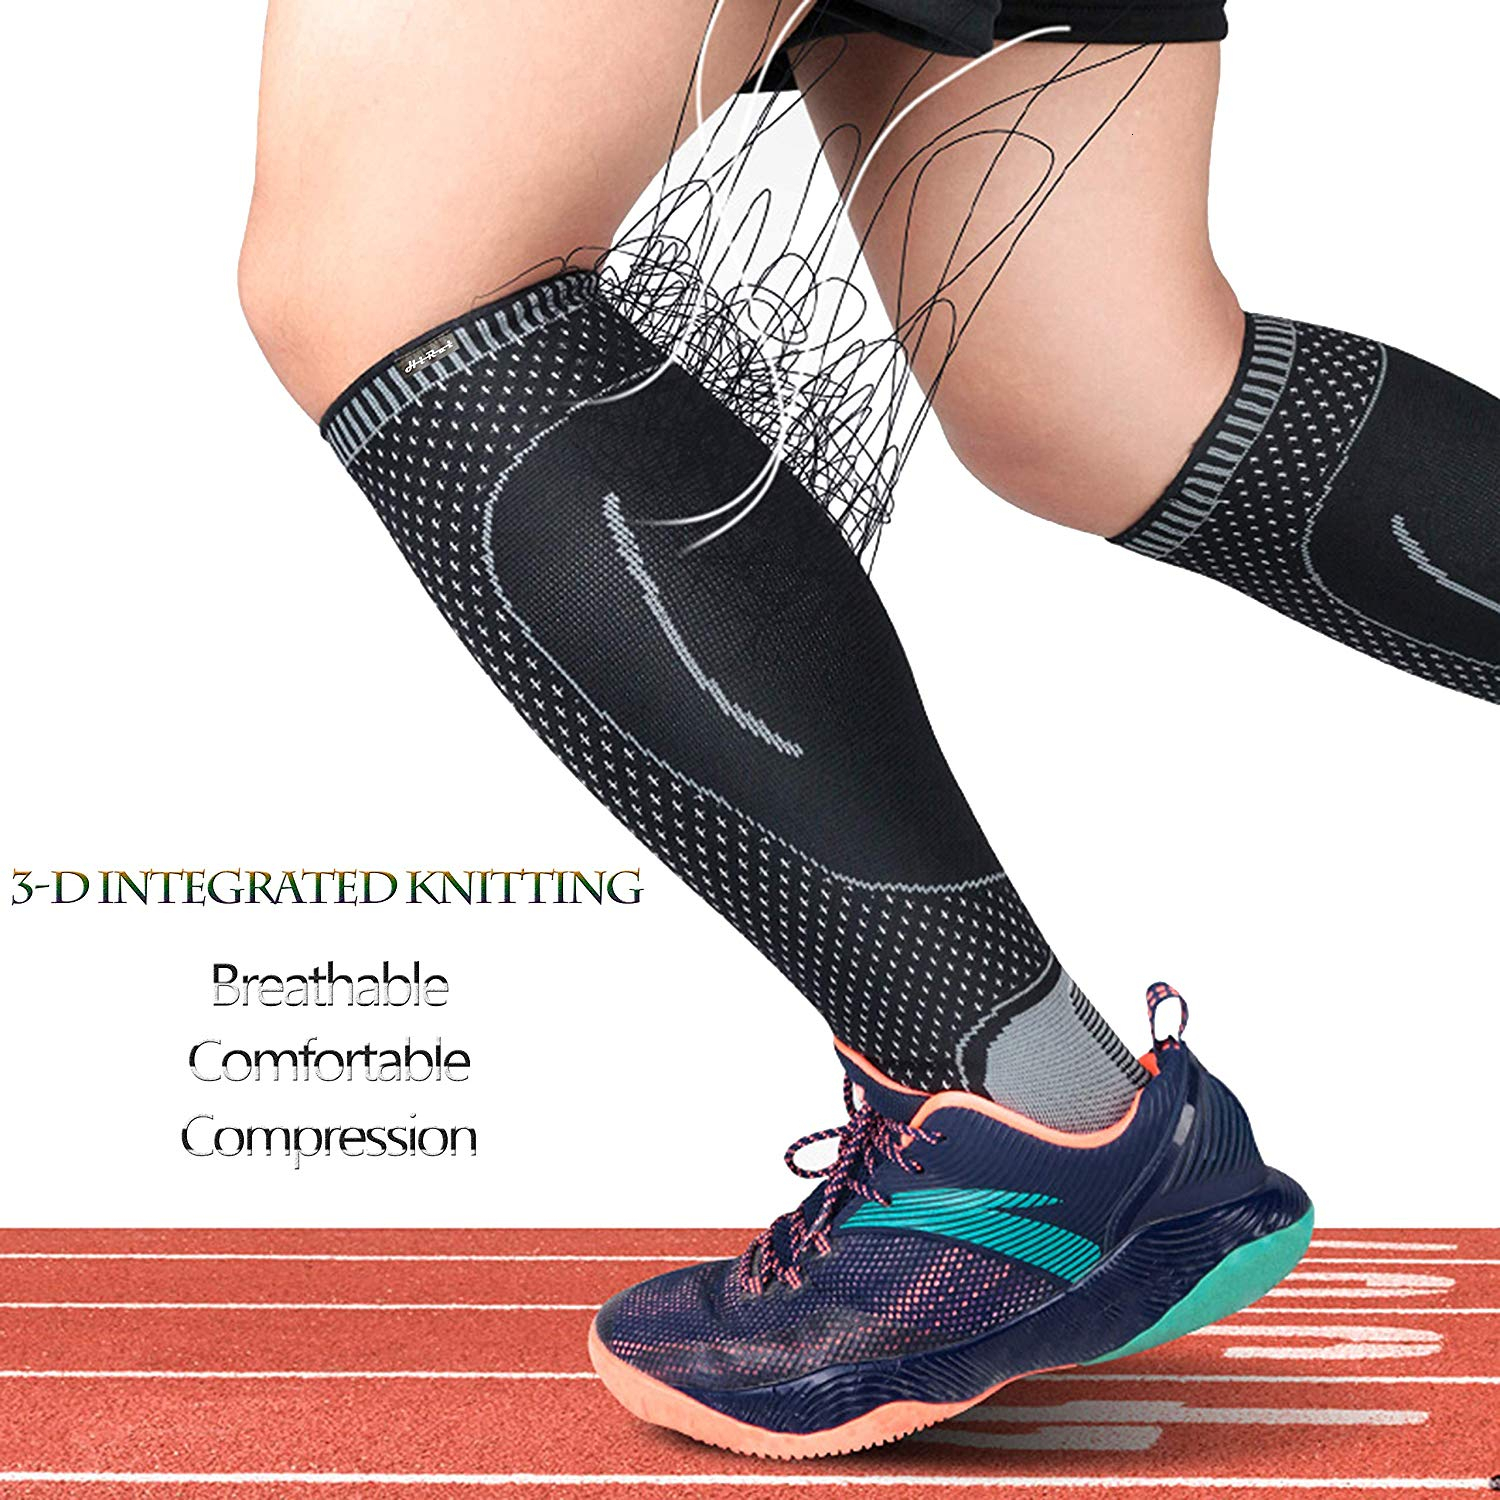 1 Pair Ankle Calf Compression Sleeve Socks Leg Guard Warmer Stocking Protector for Football Soccer Basketball